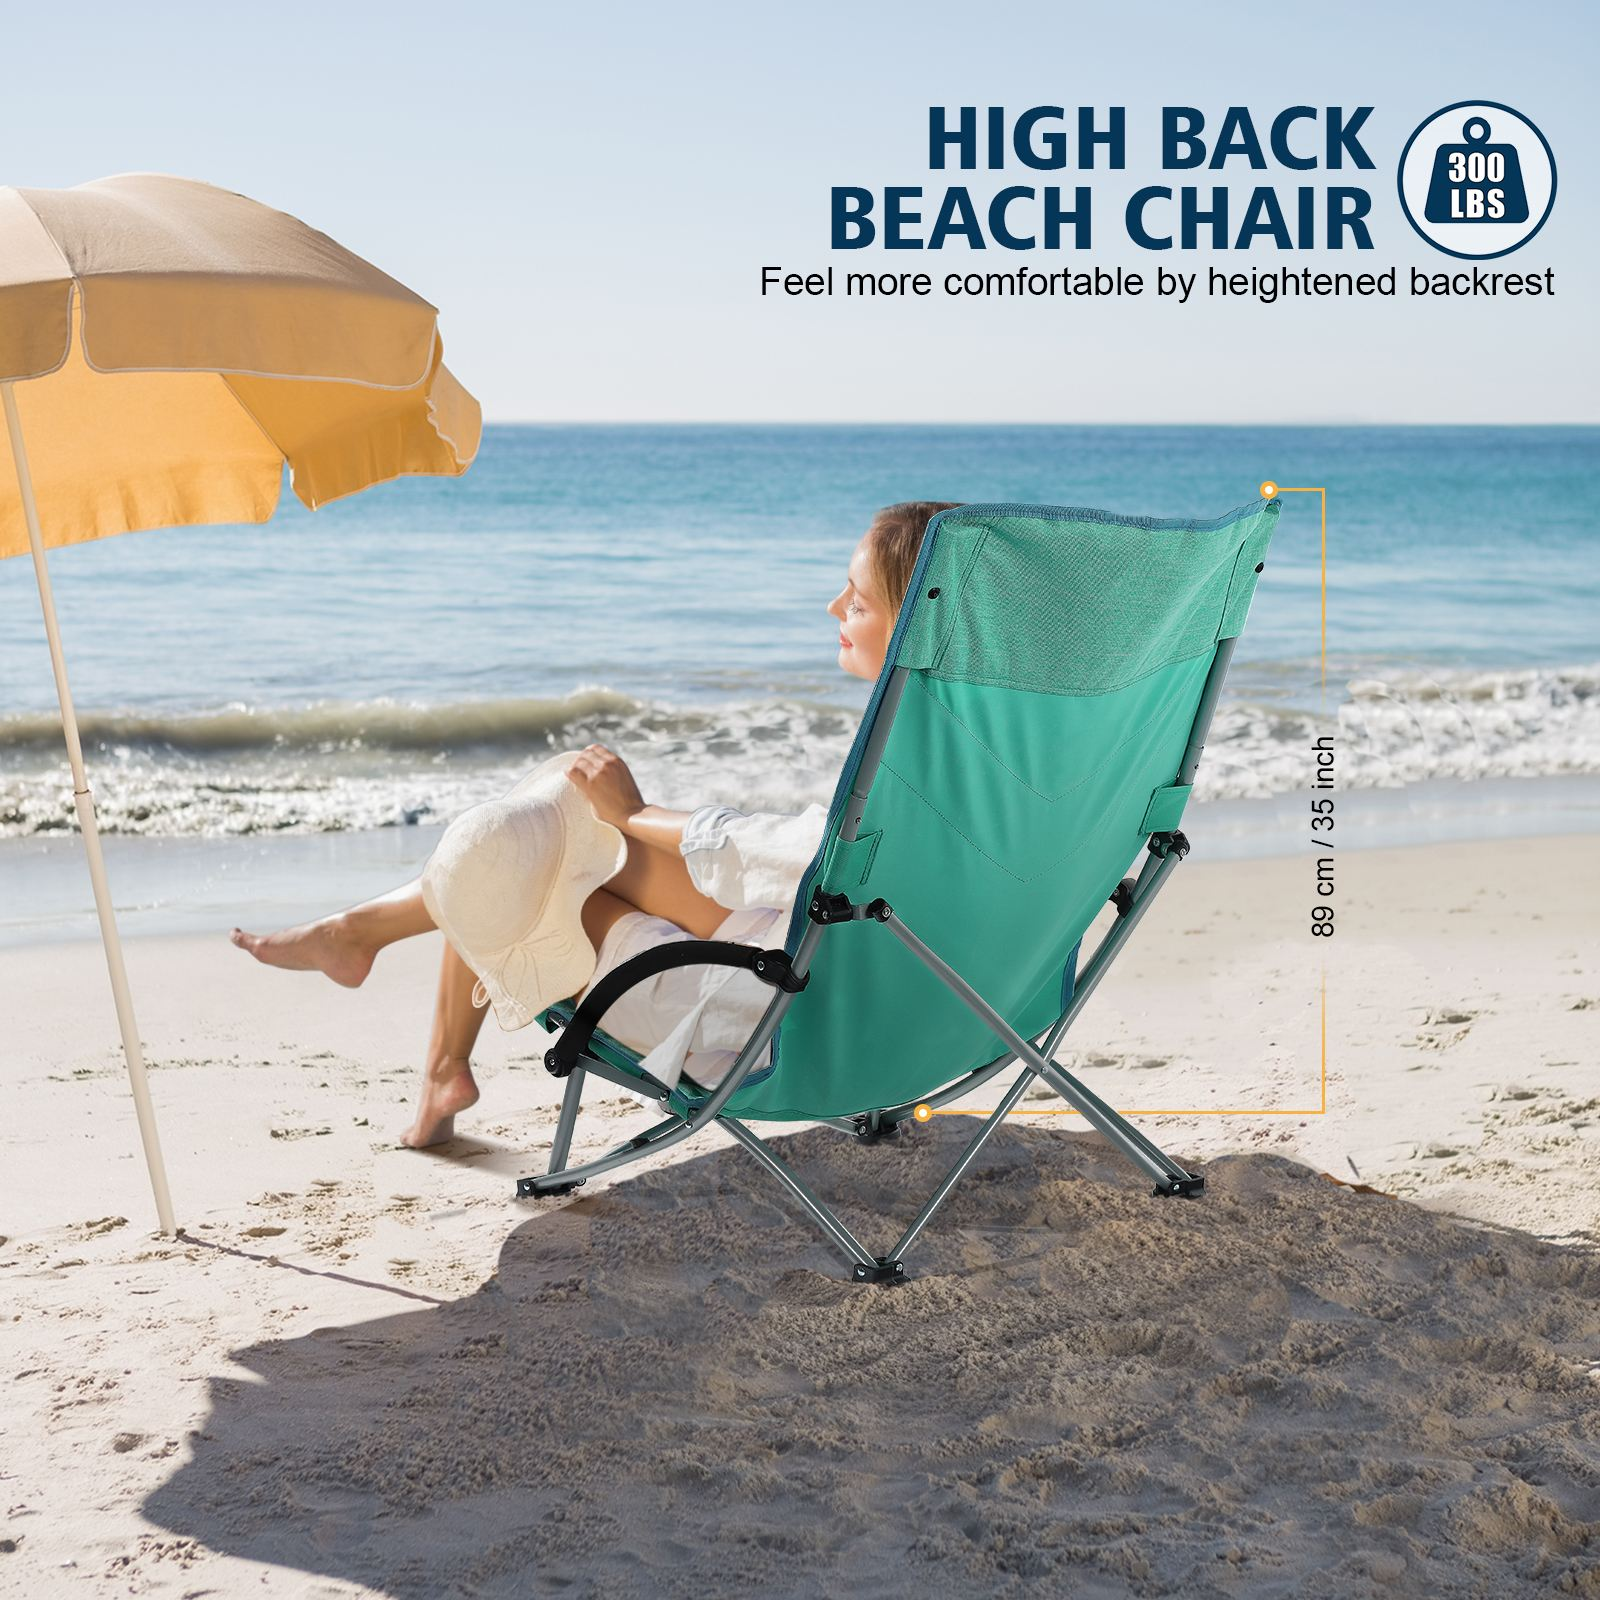 MOVTOTOP Folding Beach Chair With Cup Holder Portable Breathable Outdoor Chair Heightened Seat Beach Chair For Travel And Outing enlarge